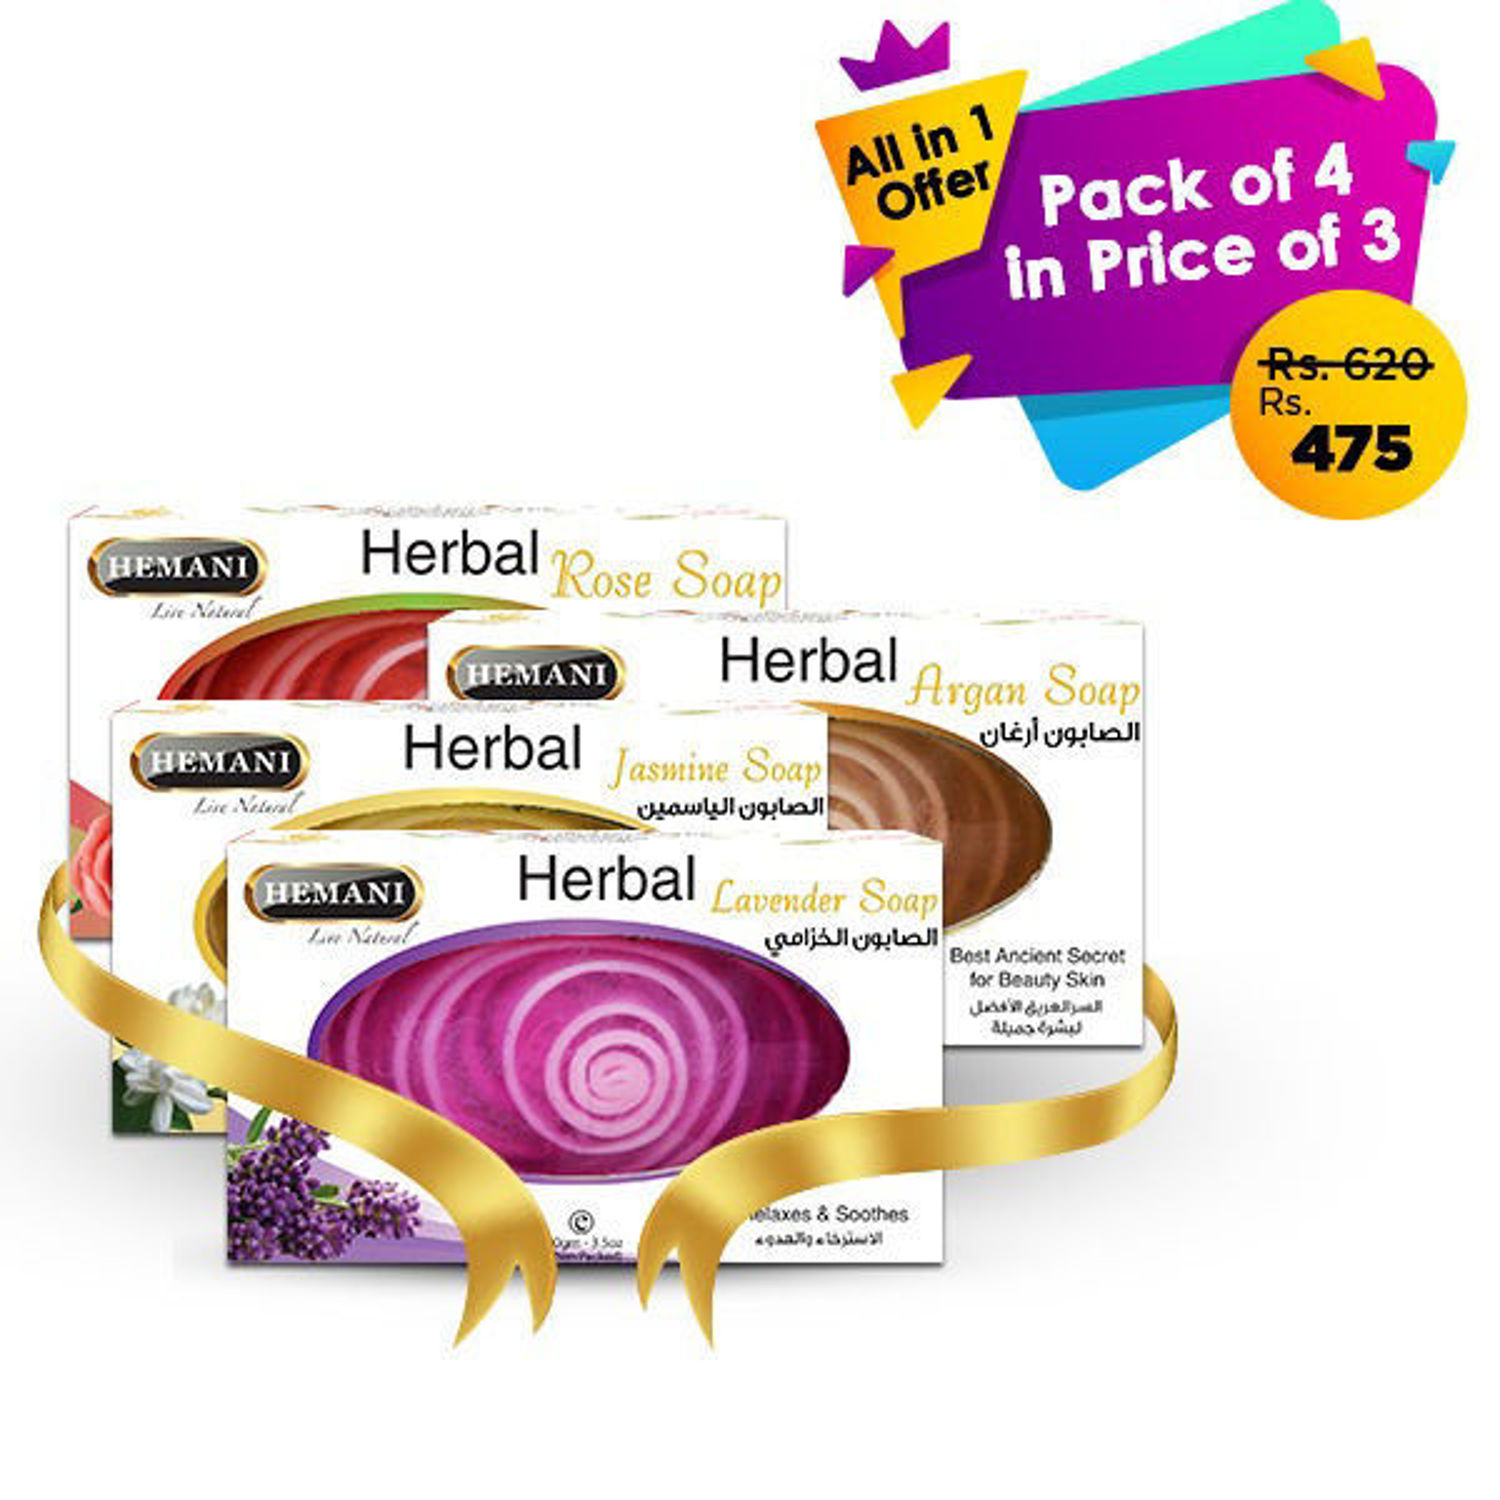 All in 1 pack of 4 in price of 3 (Soaps)